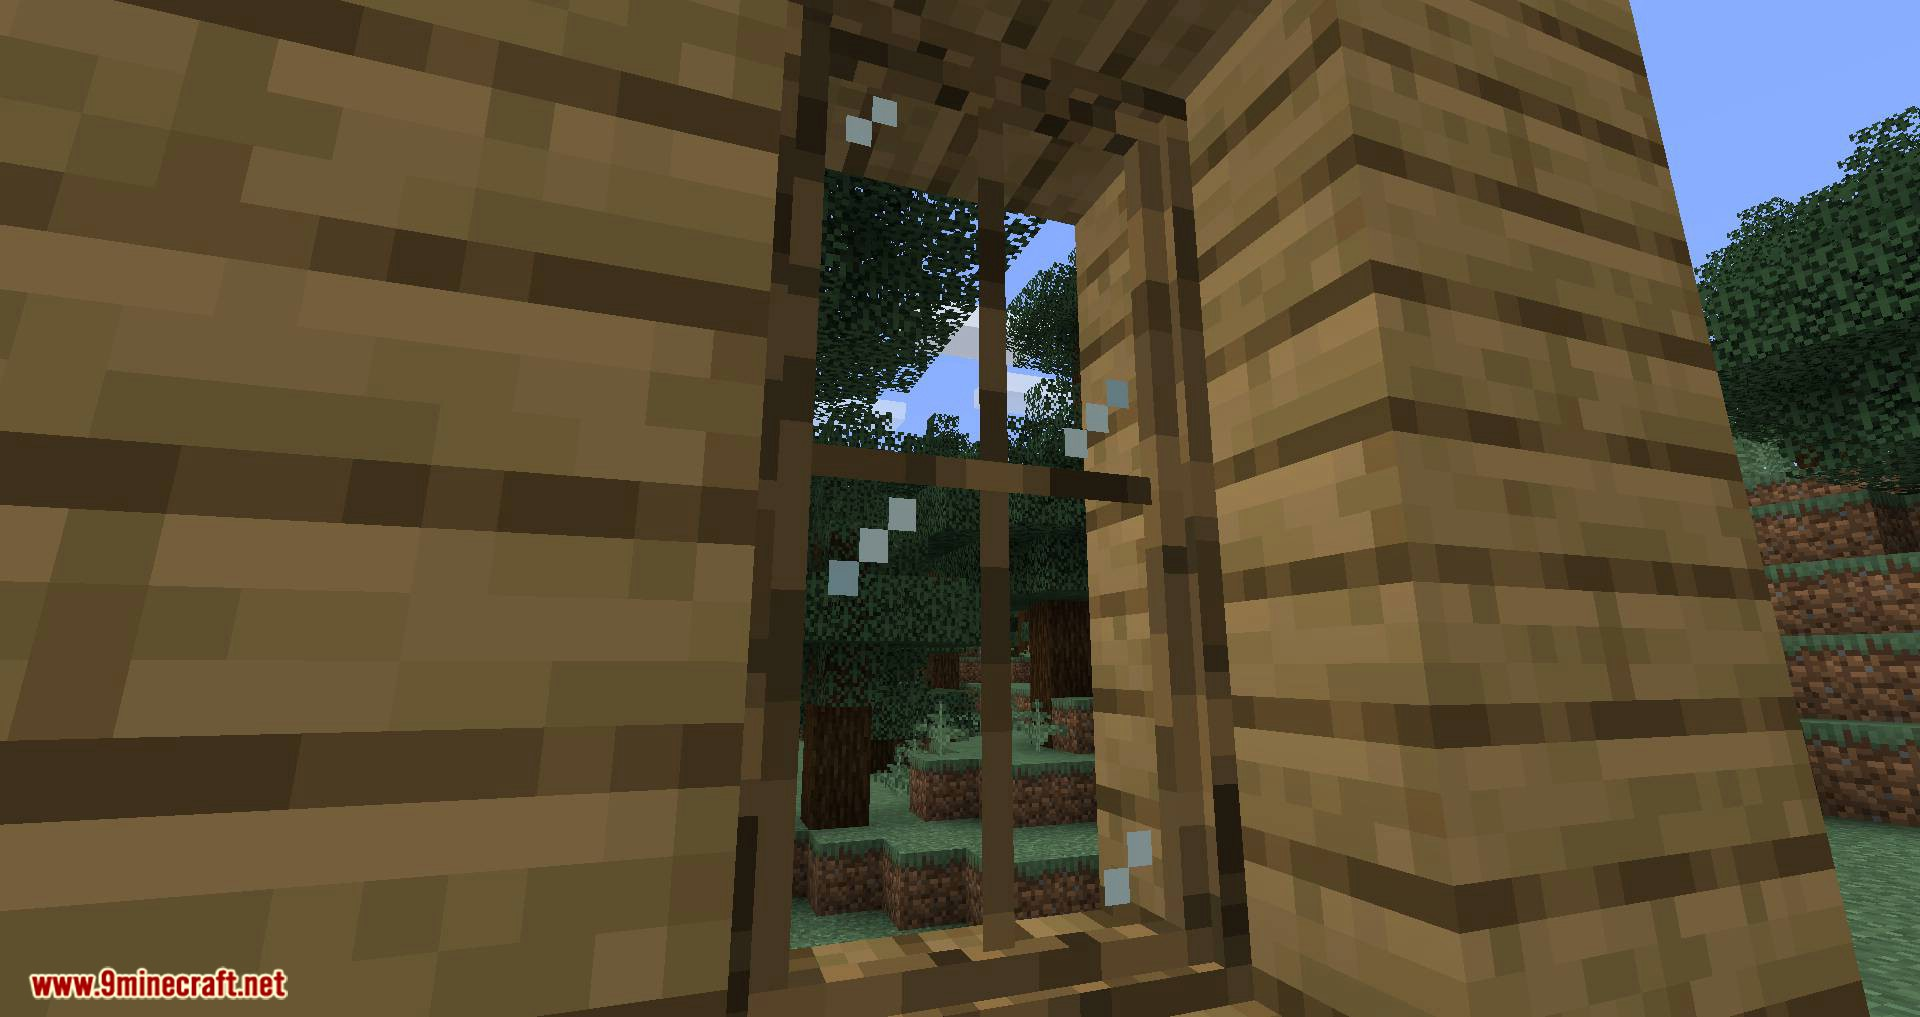 Macaw_s Windows mod for minecraft 06